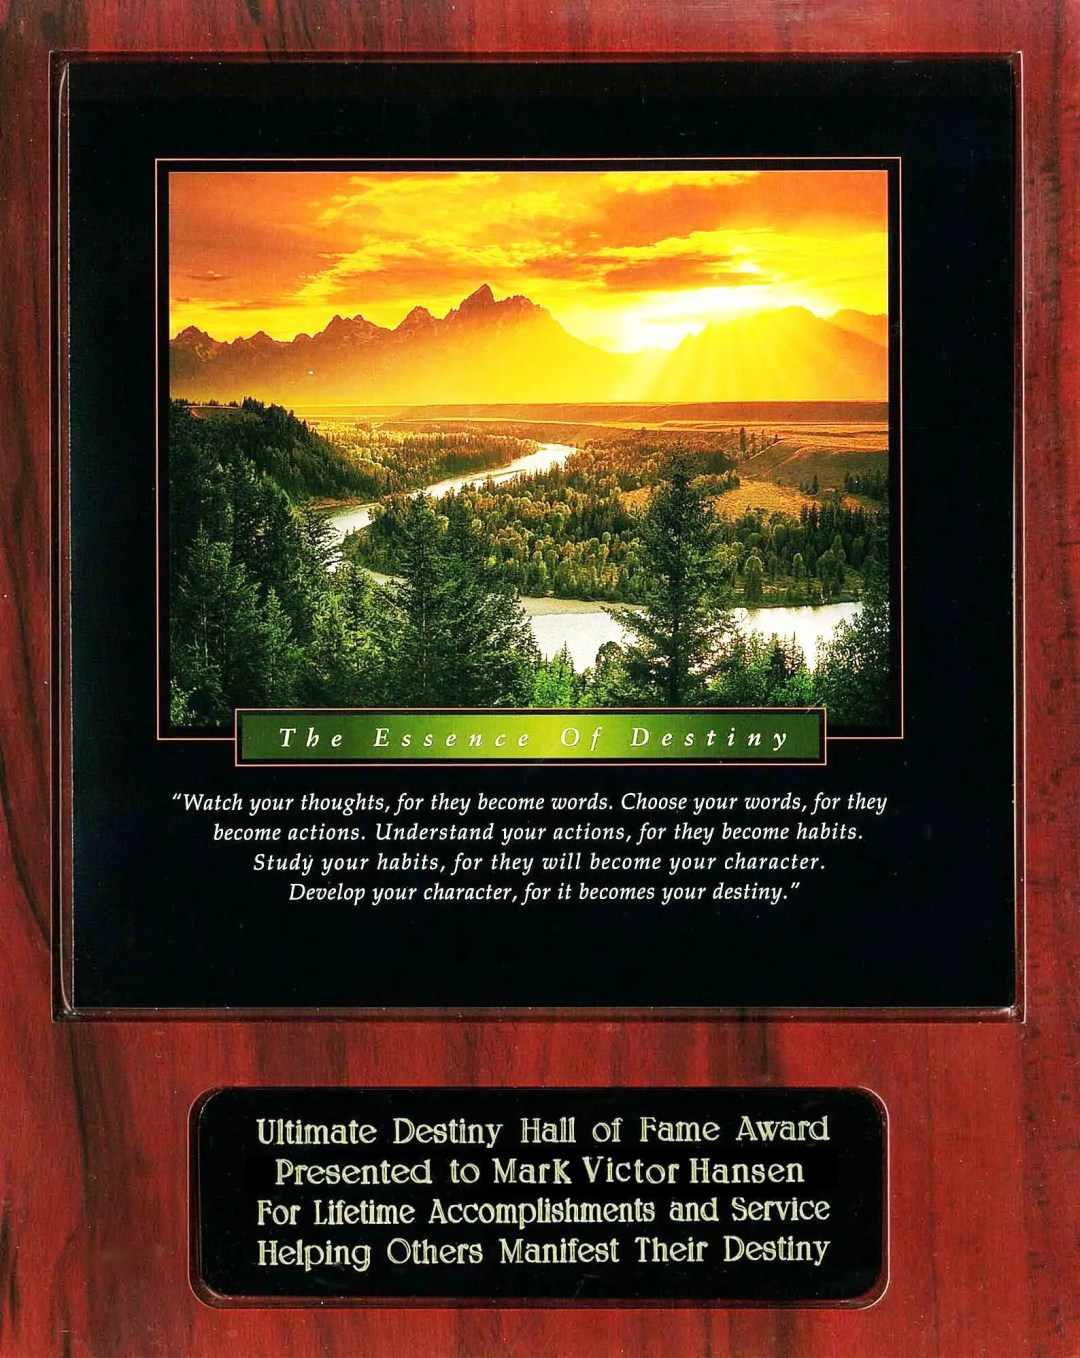 Mark Victor Hansen, Ultimate Destiny Hall of Fame Award Recipient, Award Plaque